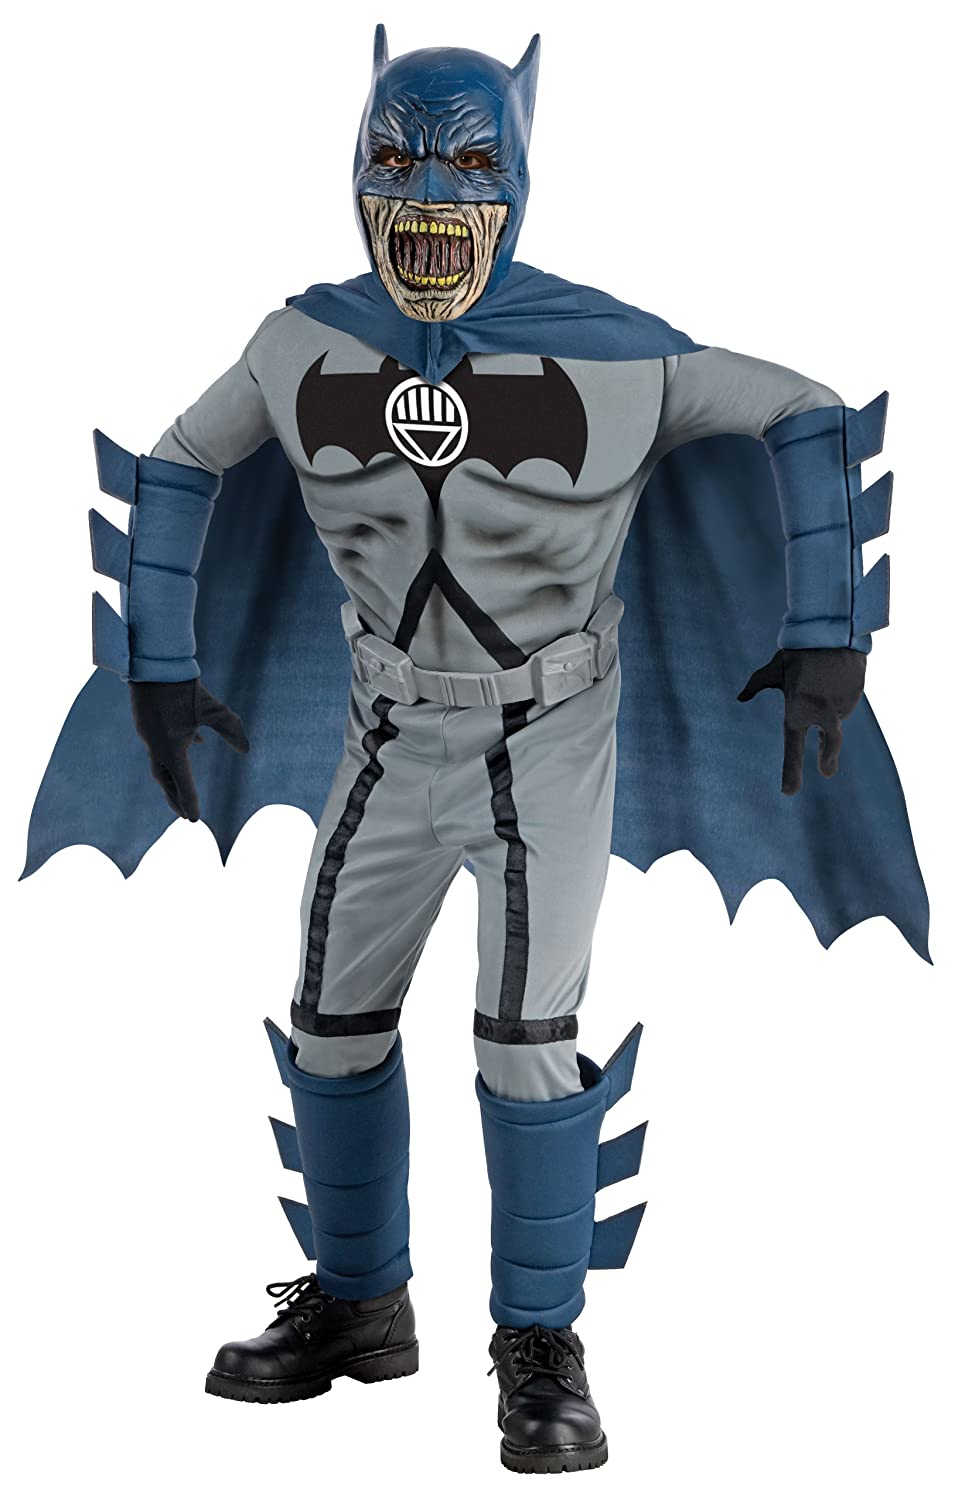 Amazon.com Blackest Night Deluxe Zombie Batman Costume and Mask - Small Toys u0026 Games  sc 1 st  Amazon.com & Amazon.com: Blackest Night Deluxe Zombie Batman Costume and Mask ...